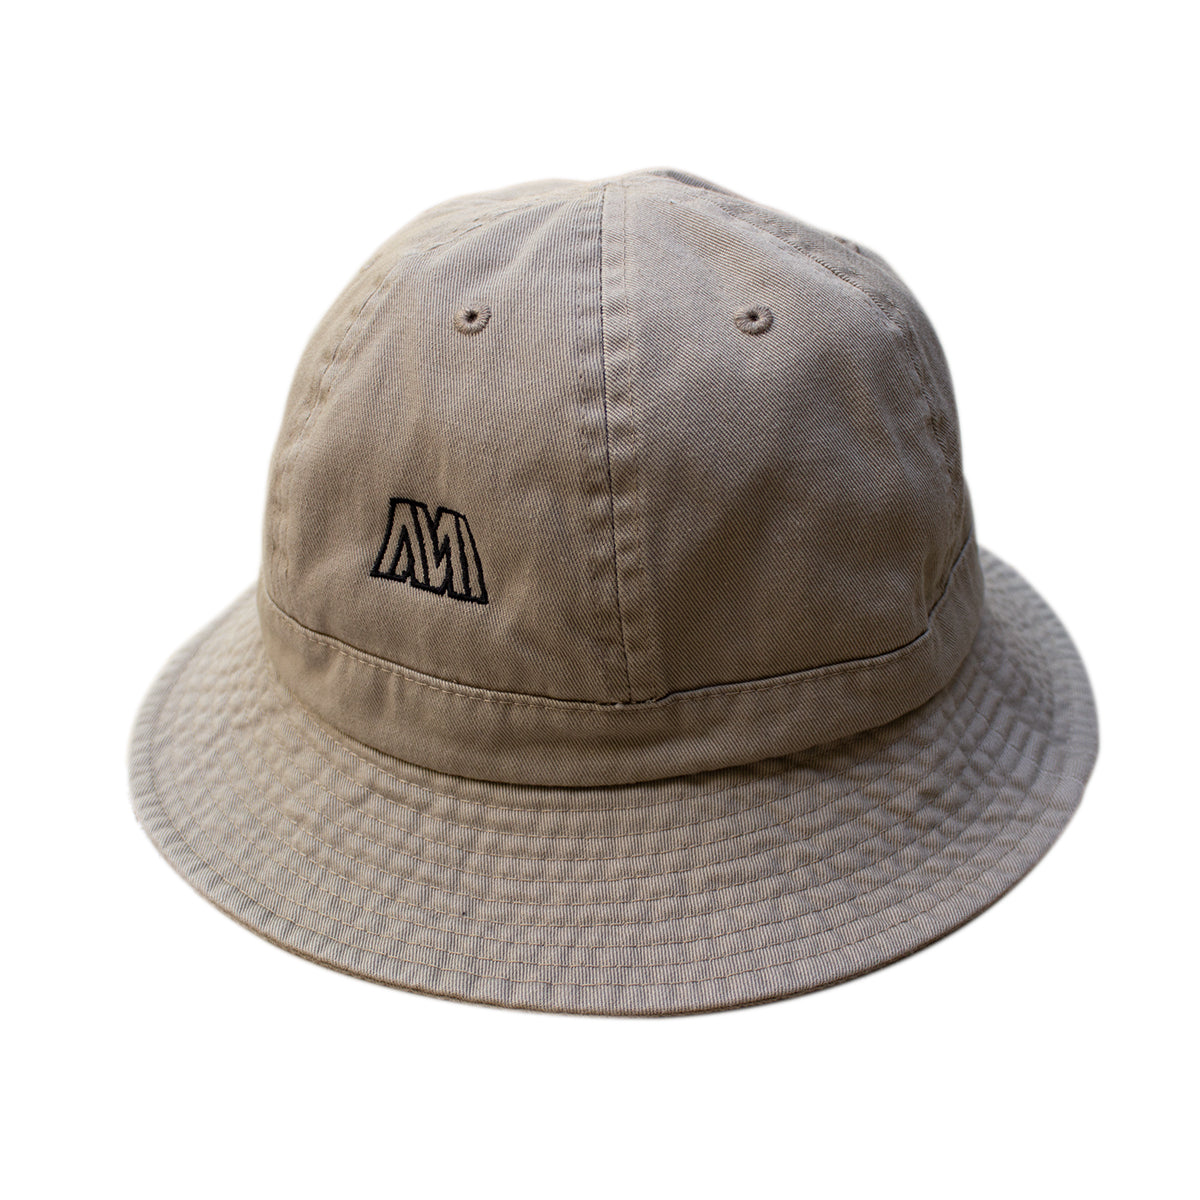 Warped Bucket Hat - Khaki